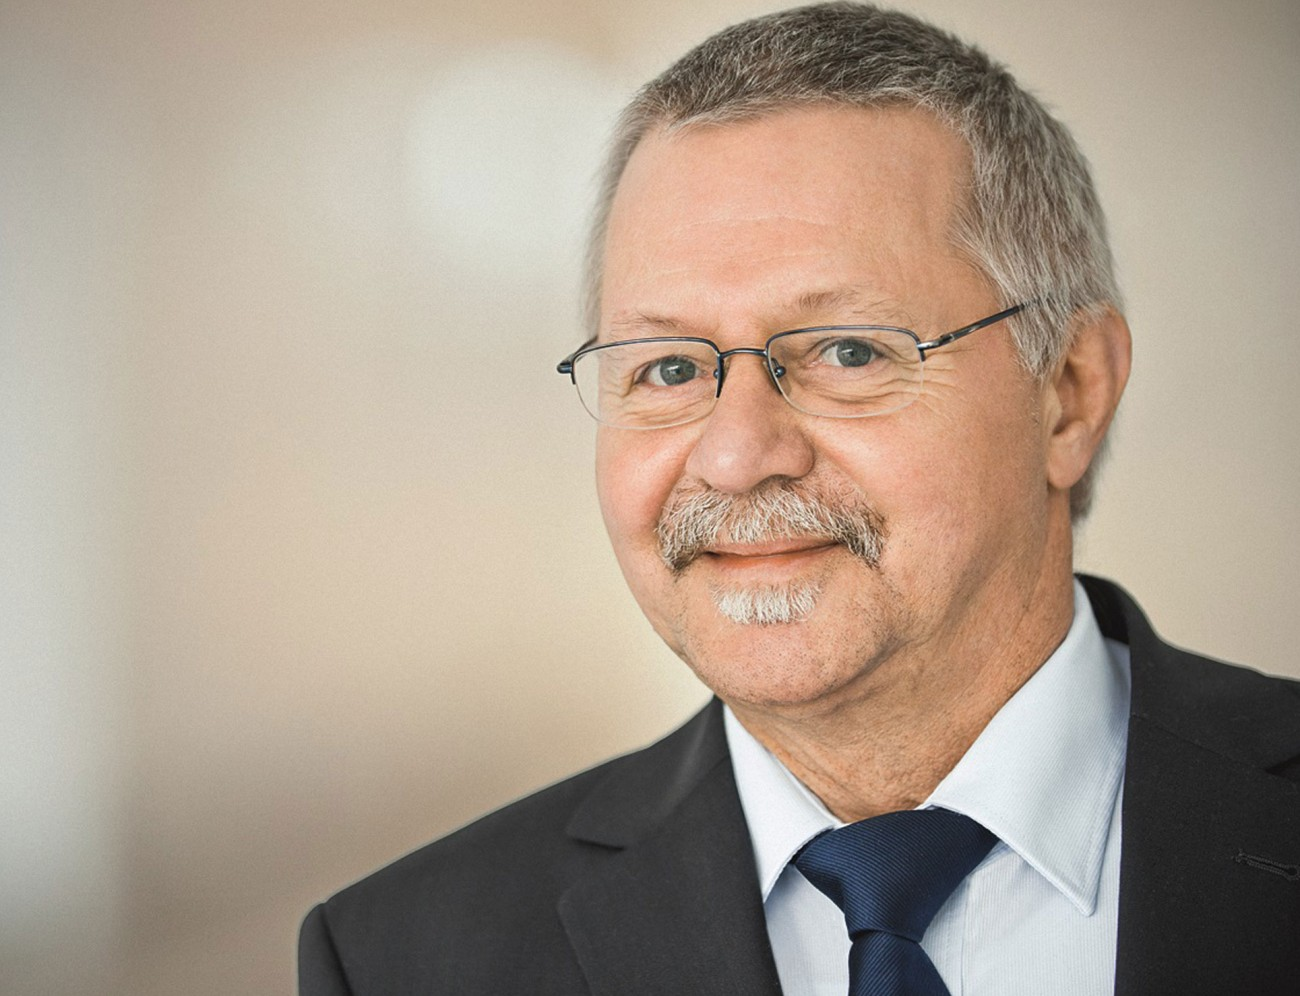 Dr Ralf Takke, Vice President Optics at Heraeus Quarzglas